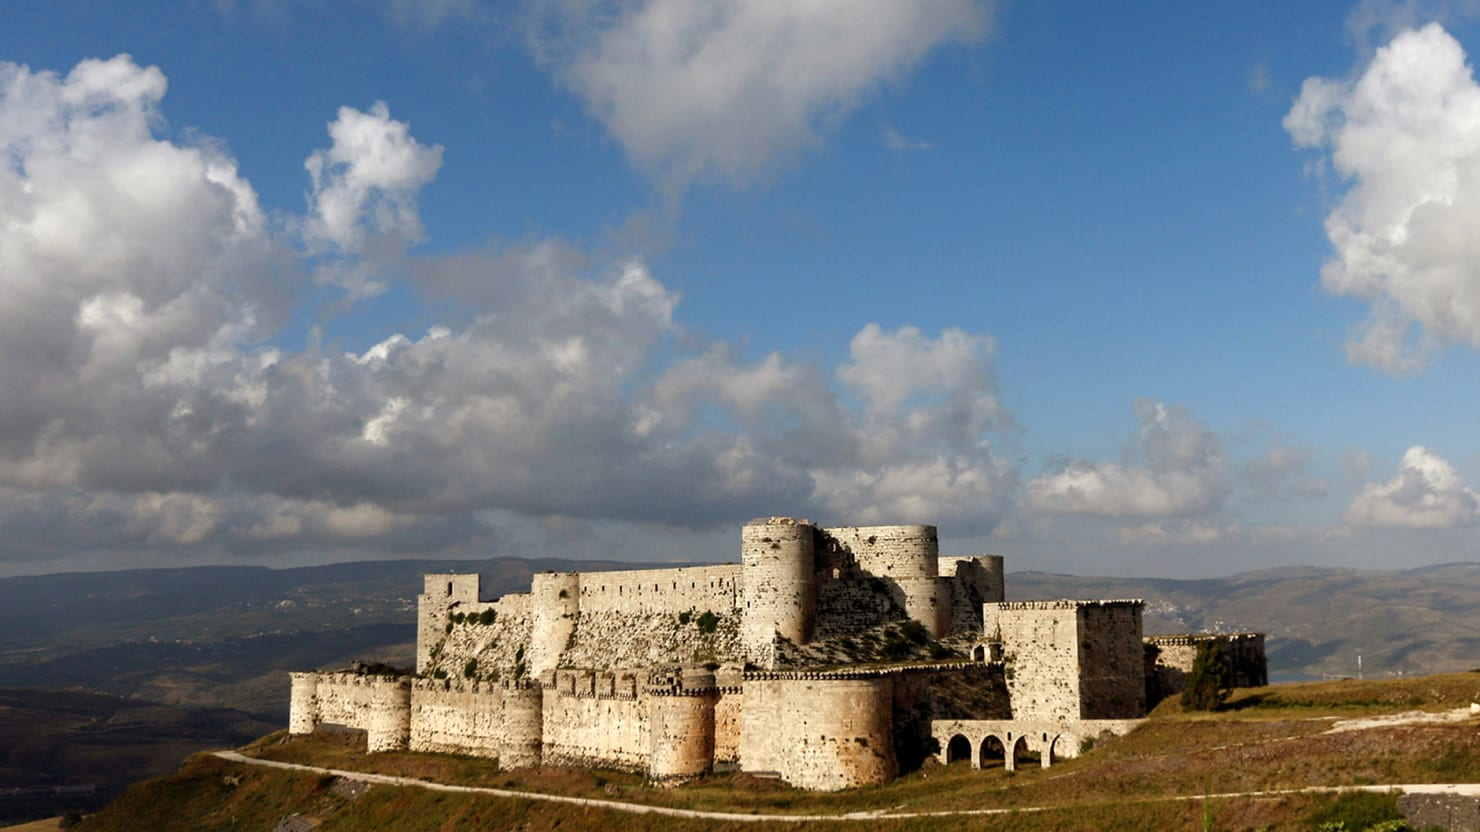 Will The Crac des Chevaliers Survive The Syrian Civil War?